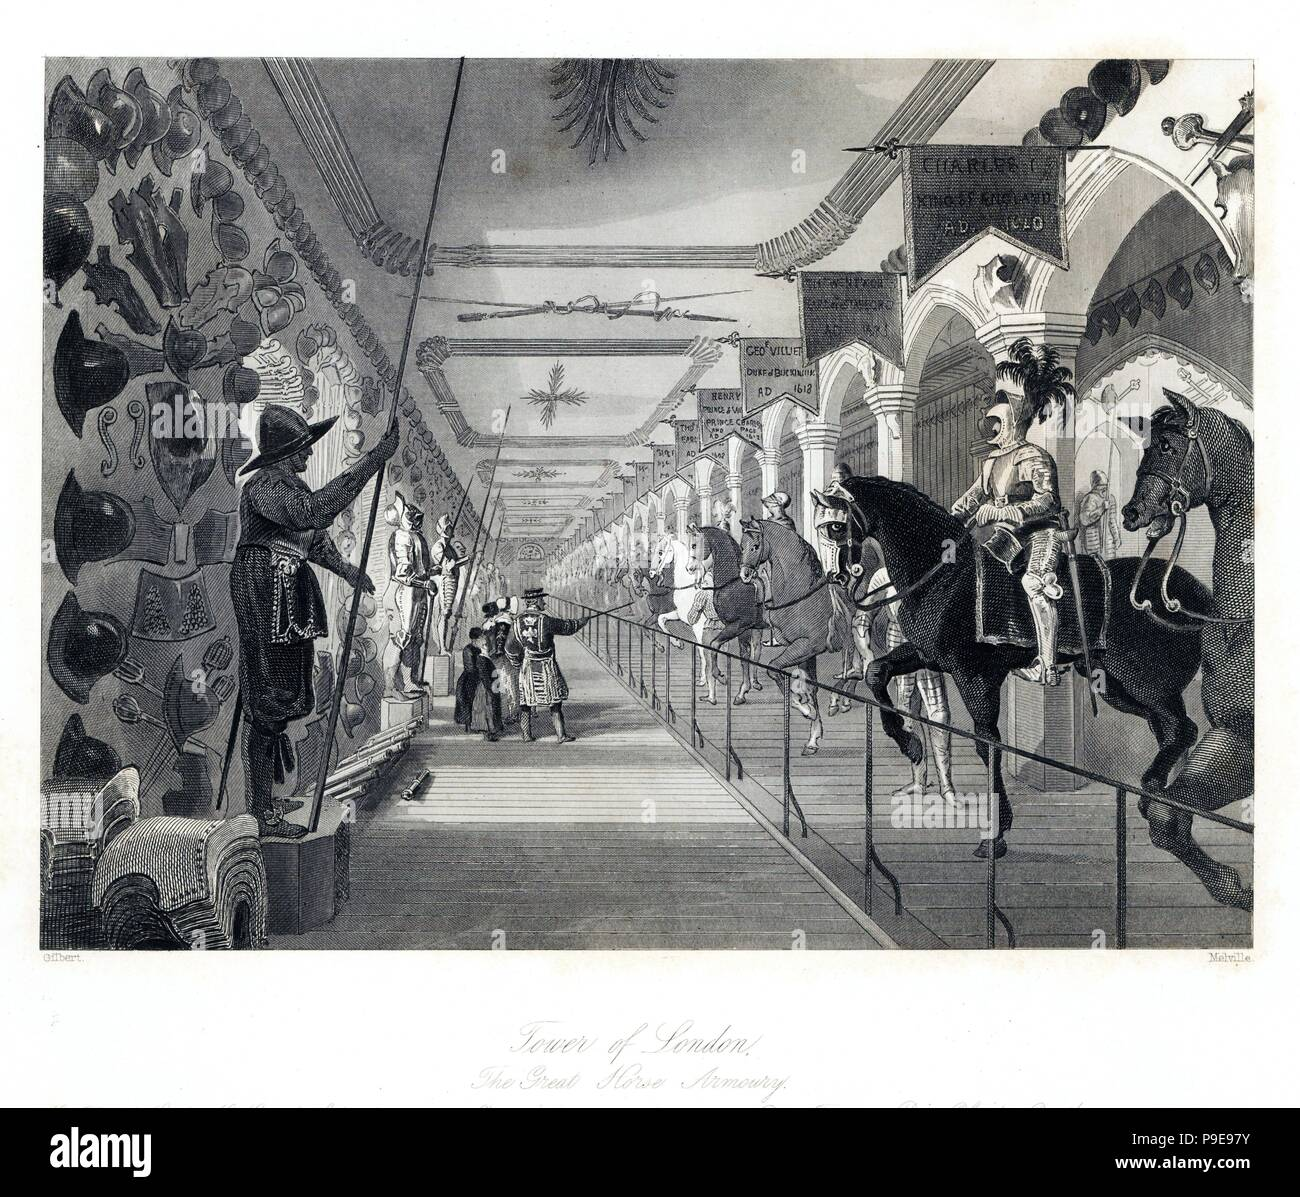 The Great Horse Armoury in the Tower of London. Steel engraving by Henry Melville after an illustration by Gilbert from London Interiors, Their Costumes and Ceremonies, Joshua Mead, London, 1841. - Stock Image